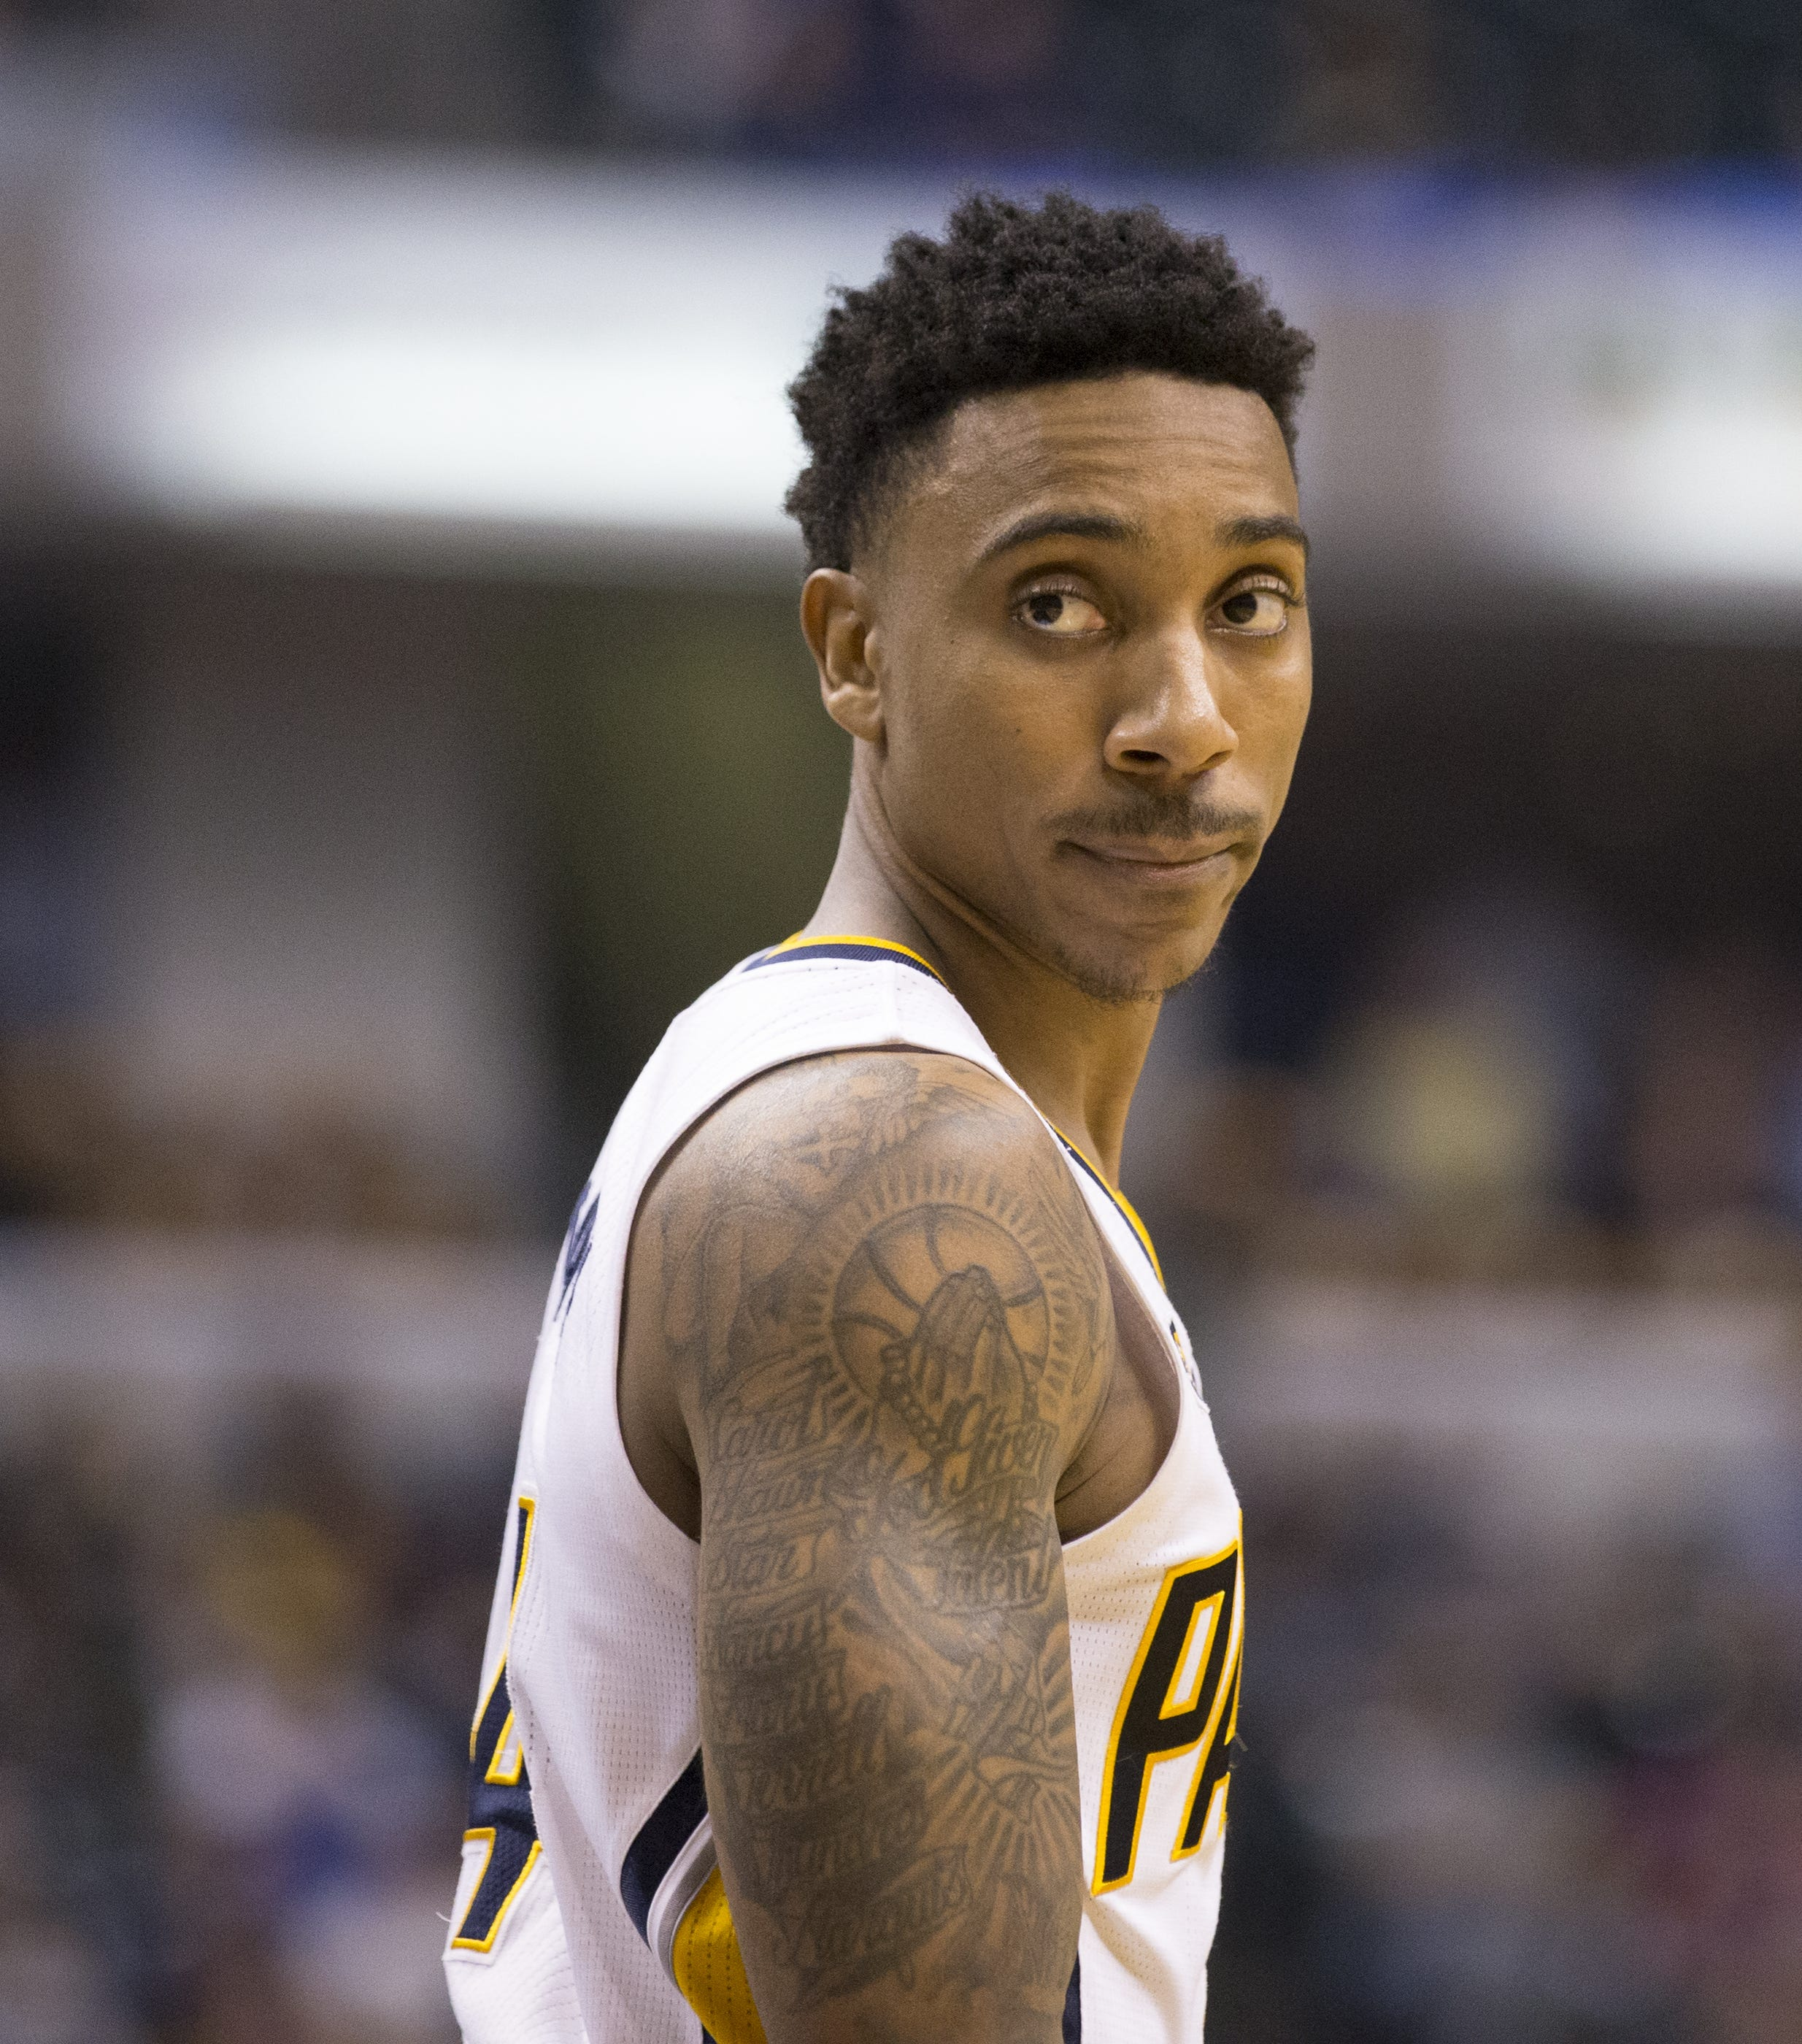 Insider: Will Jeff Teague and C.J. Miles depart as free agents?